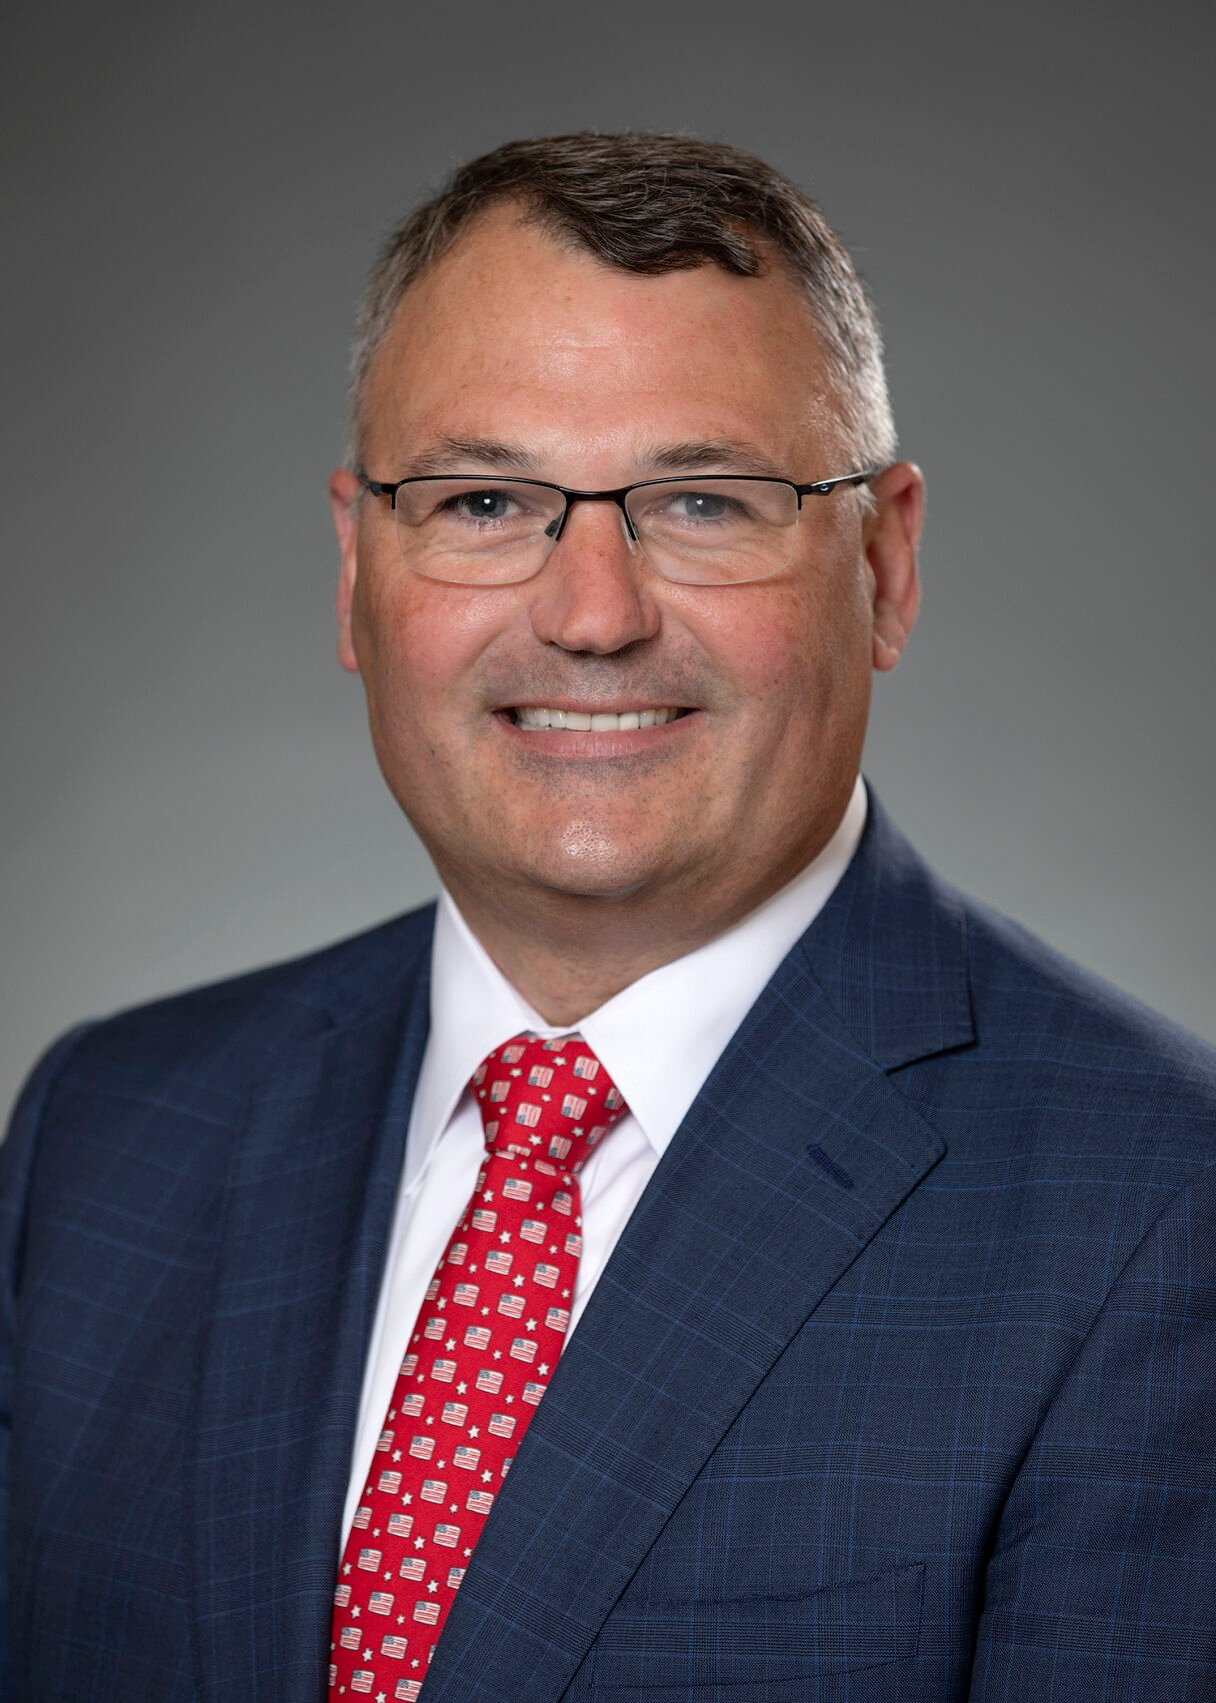 O'Connor to become CEO of Yale New Haven Health